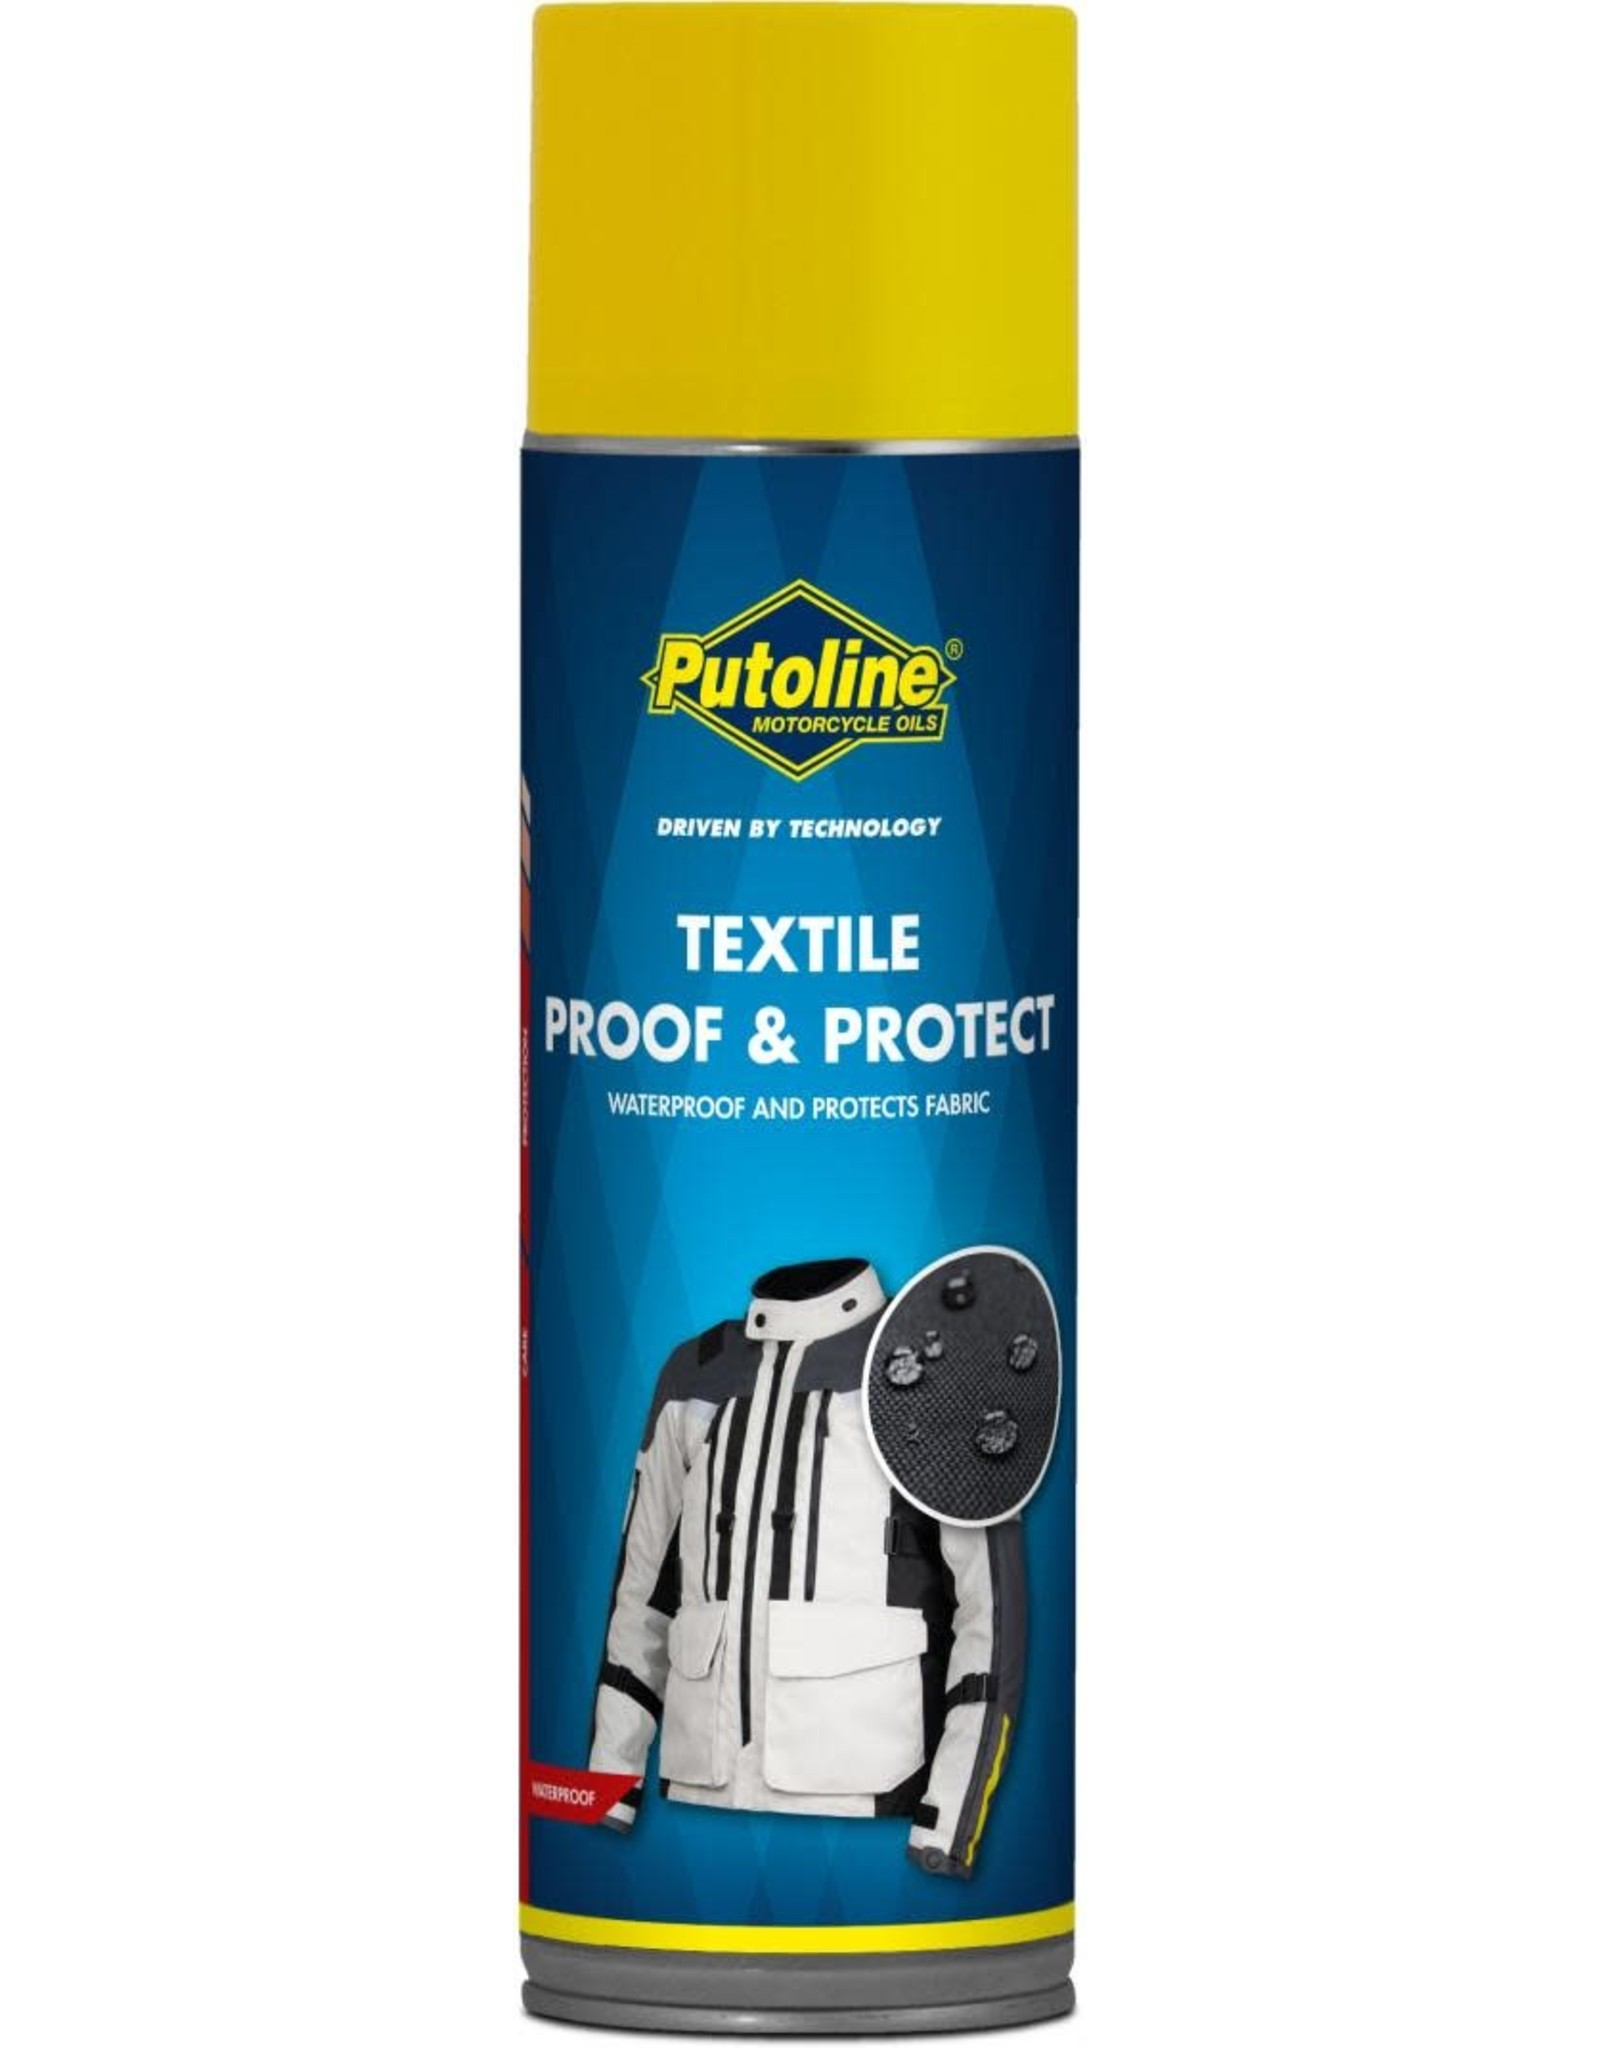 Putoline TEXTILE PROOF & PROTECT